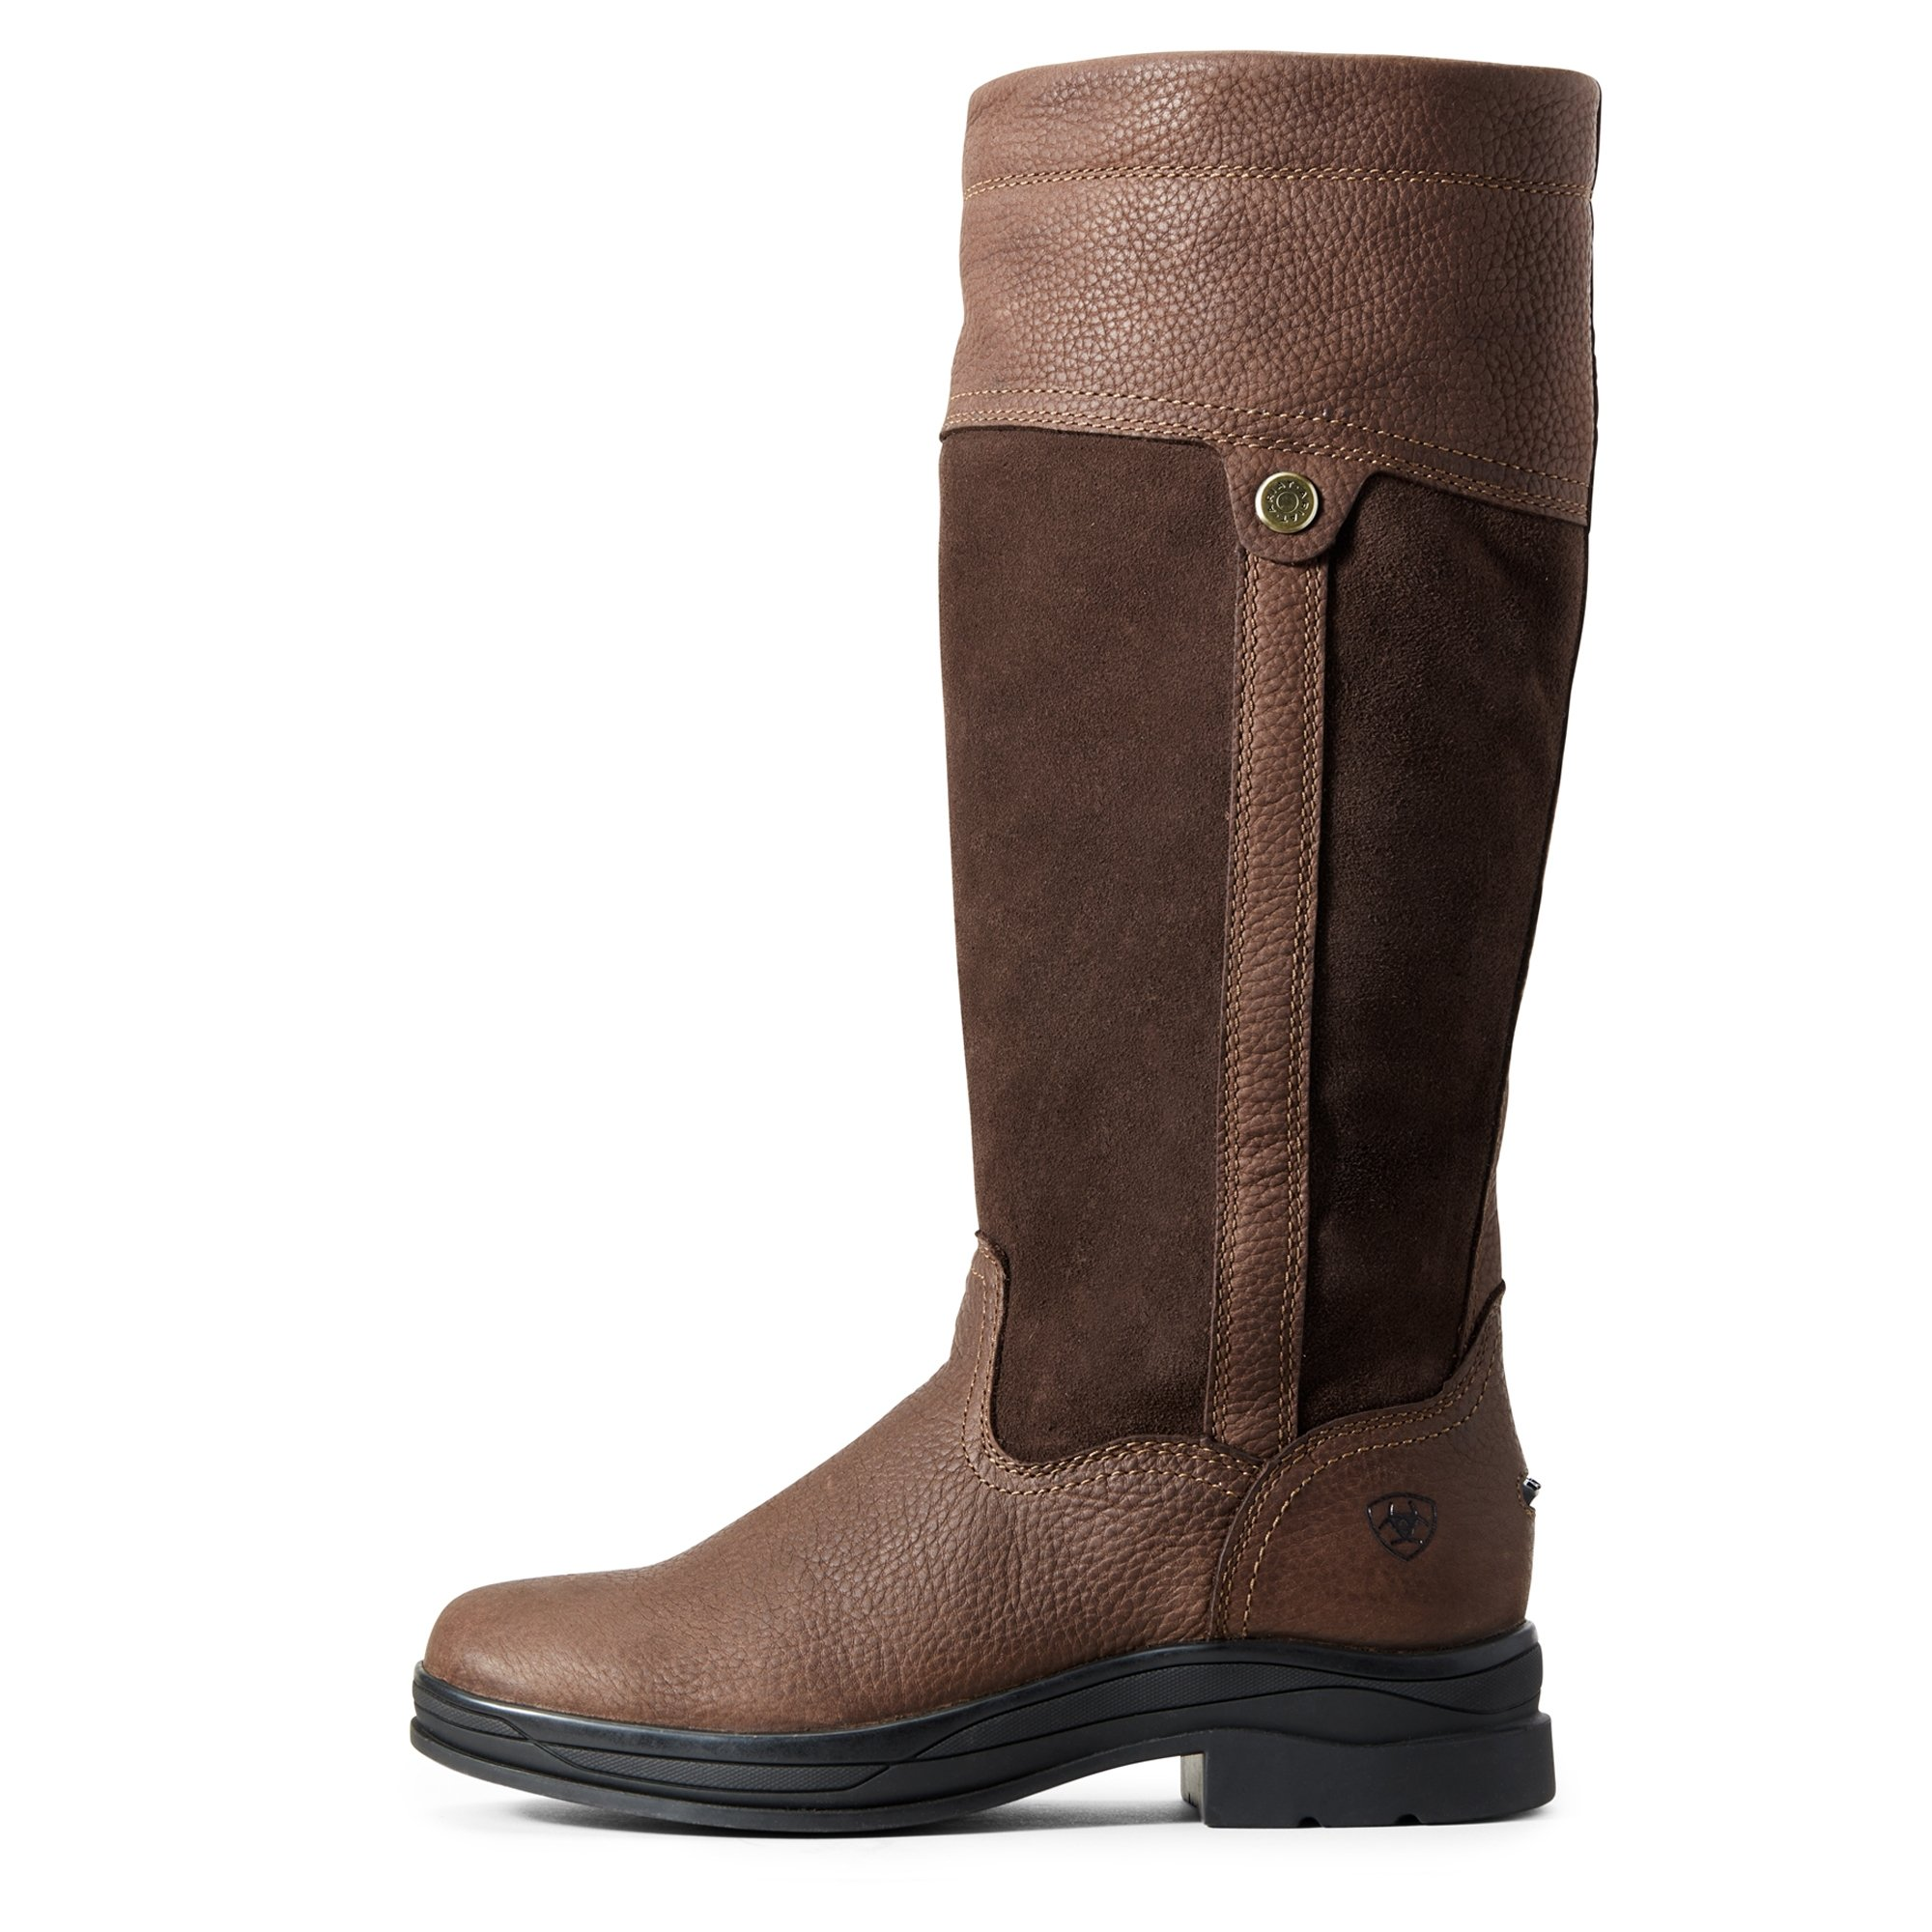 1696e384158 Women's Wellies & Country Boots | Women's Footwear | Naylors.com